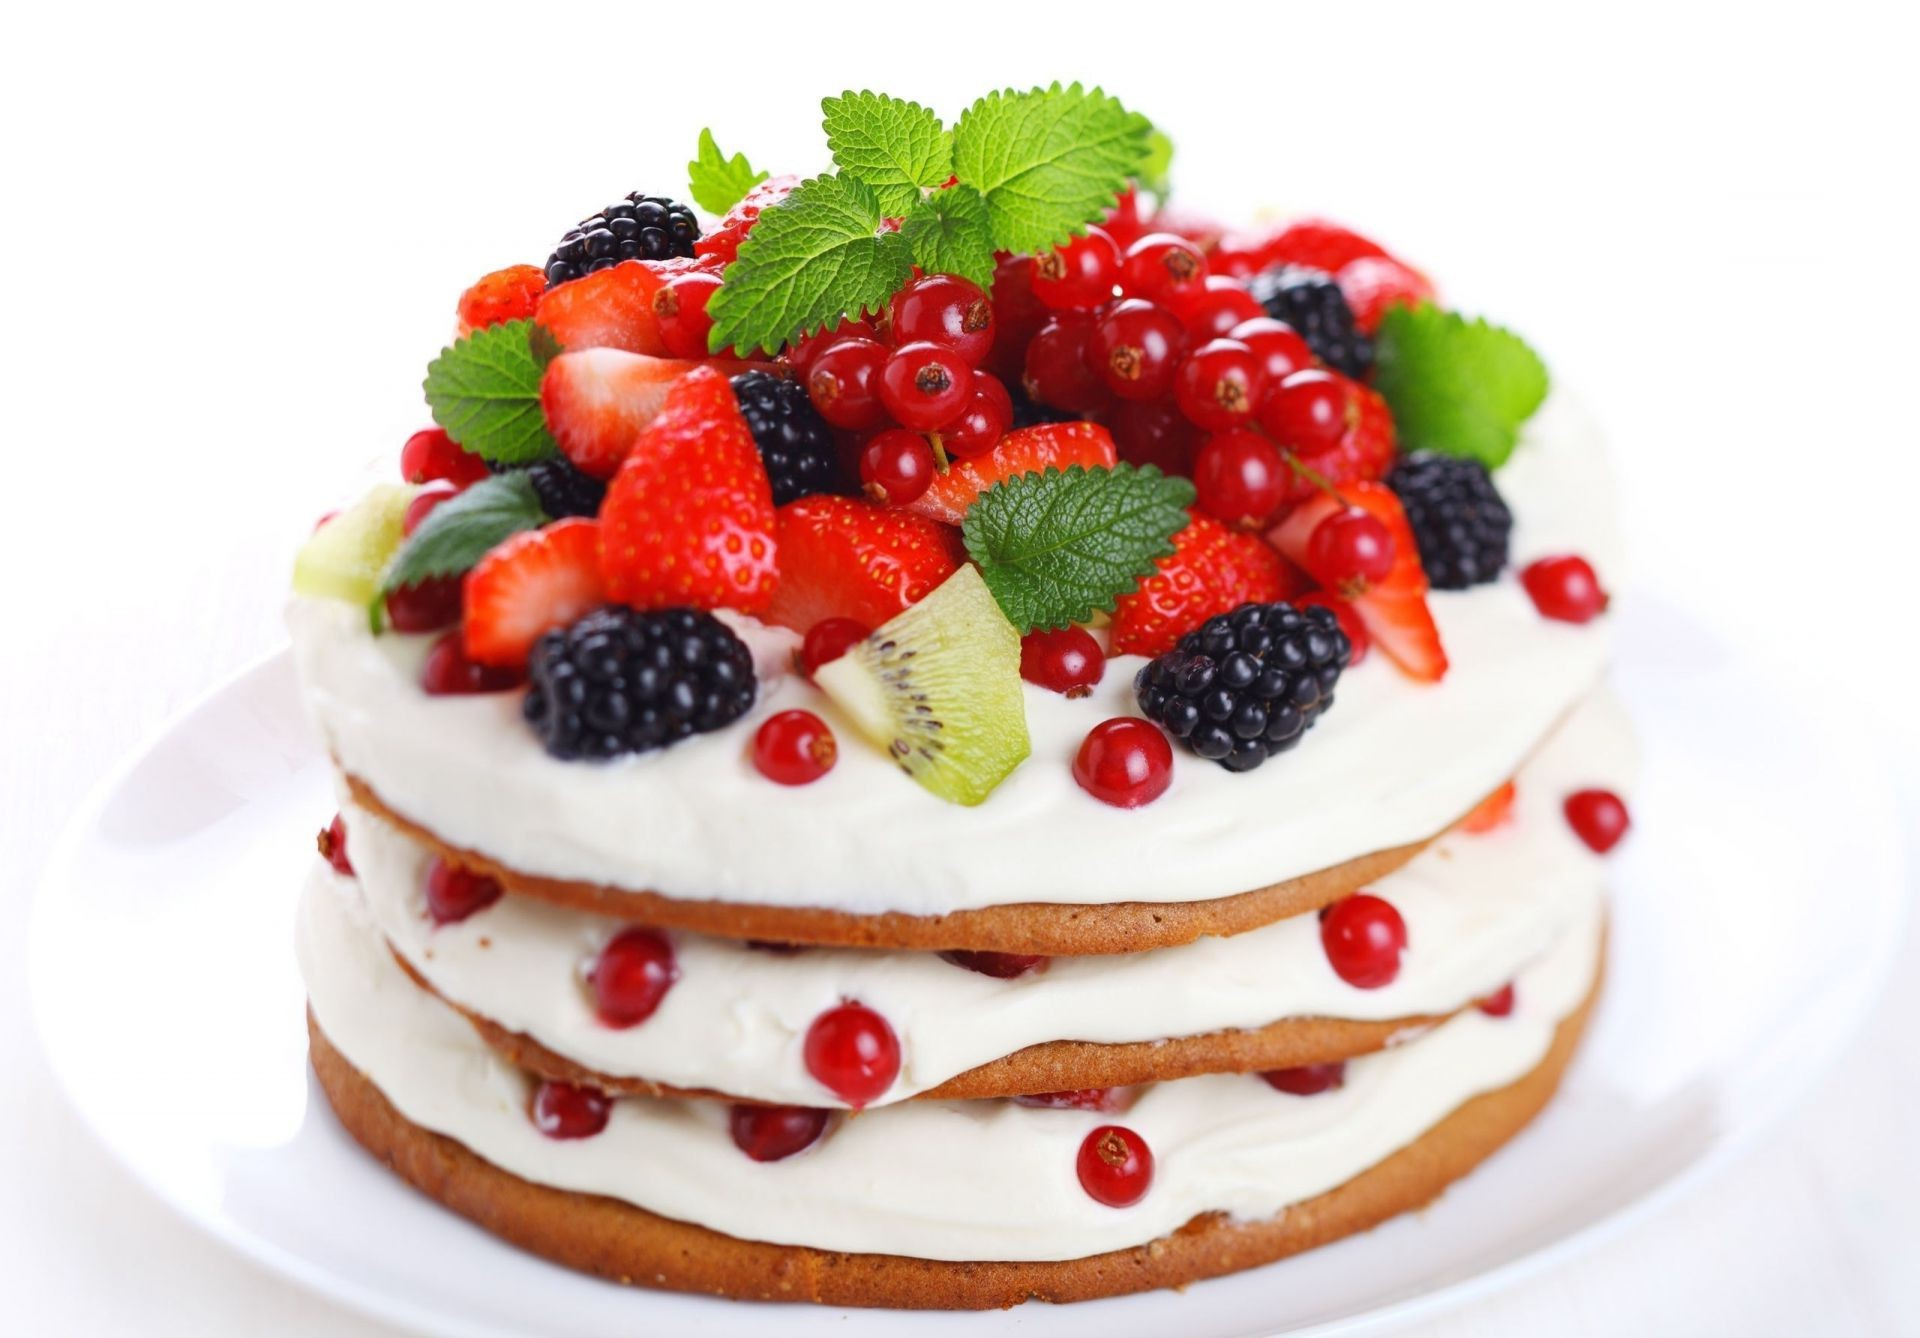 kiwi strawberry Cake BlackBerry currant berries